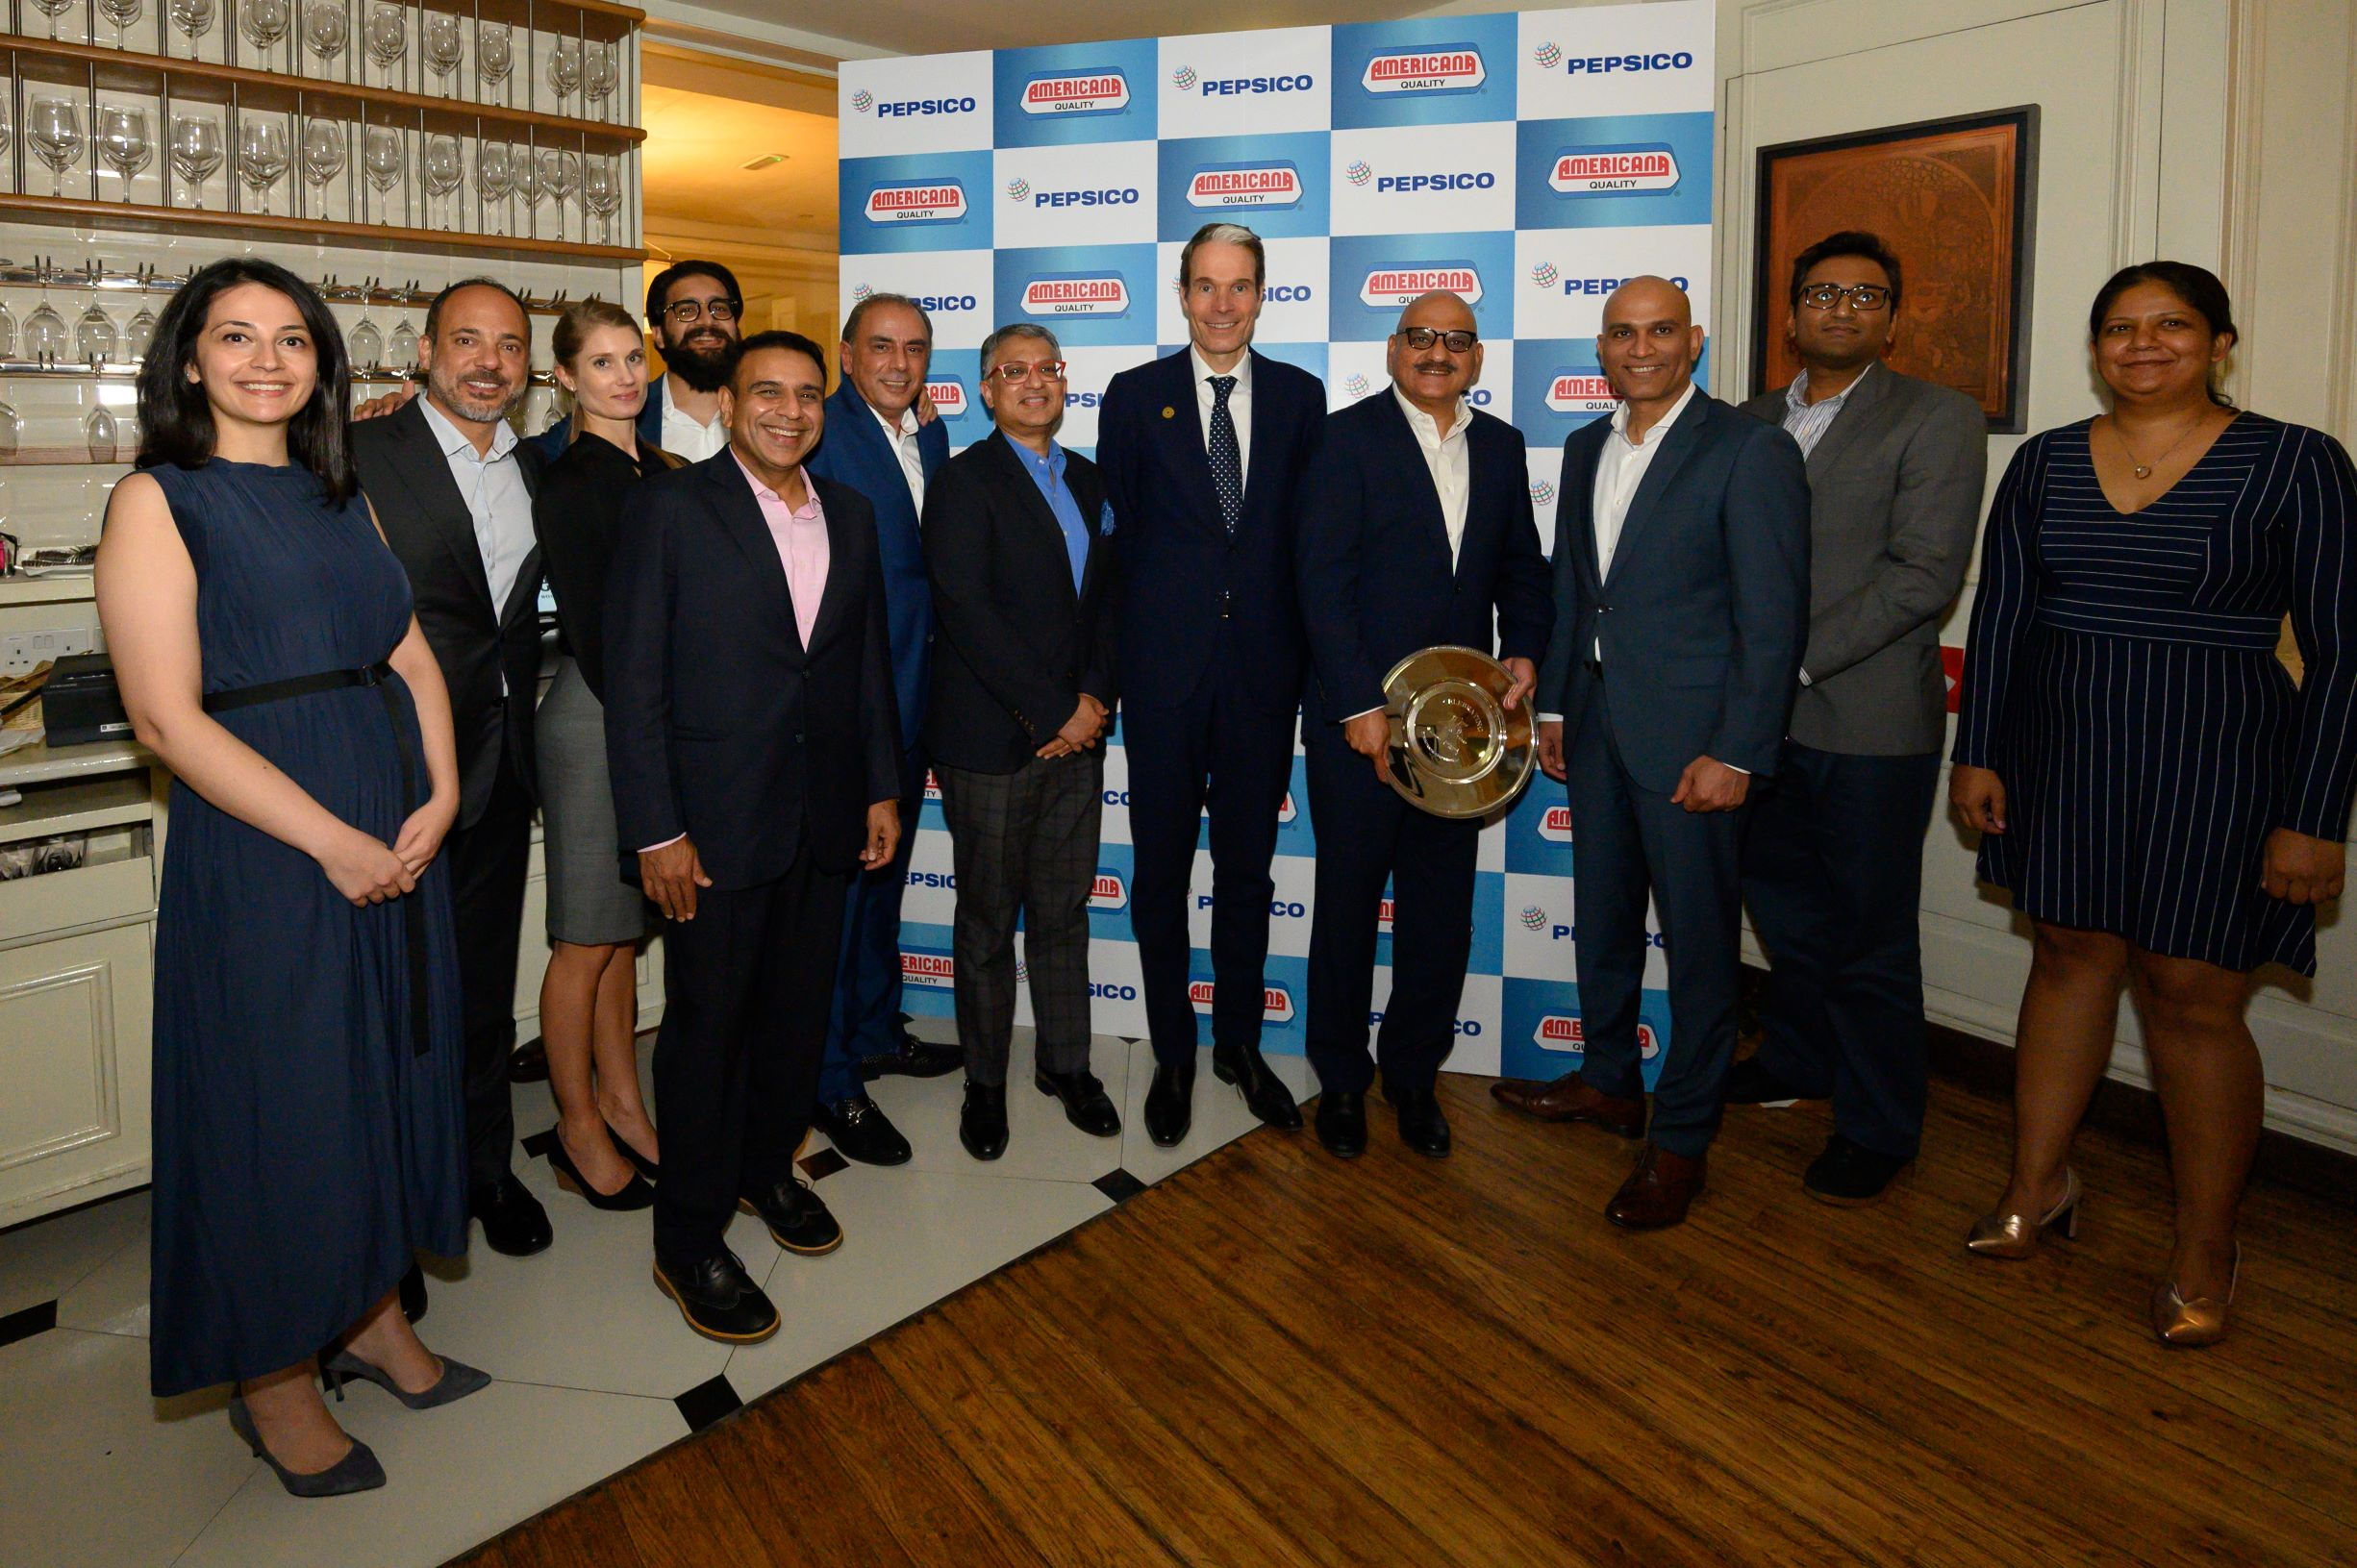 PepsiCo and Americana reaffirm their longstanding and trusted business partnership by signing an extended 6-year agreement